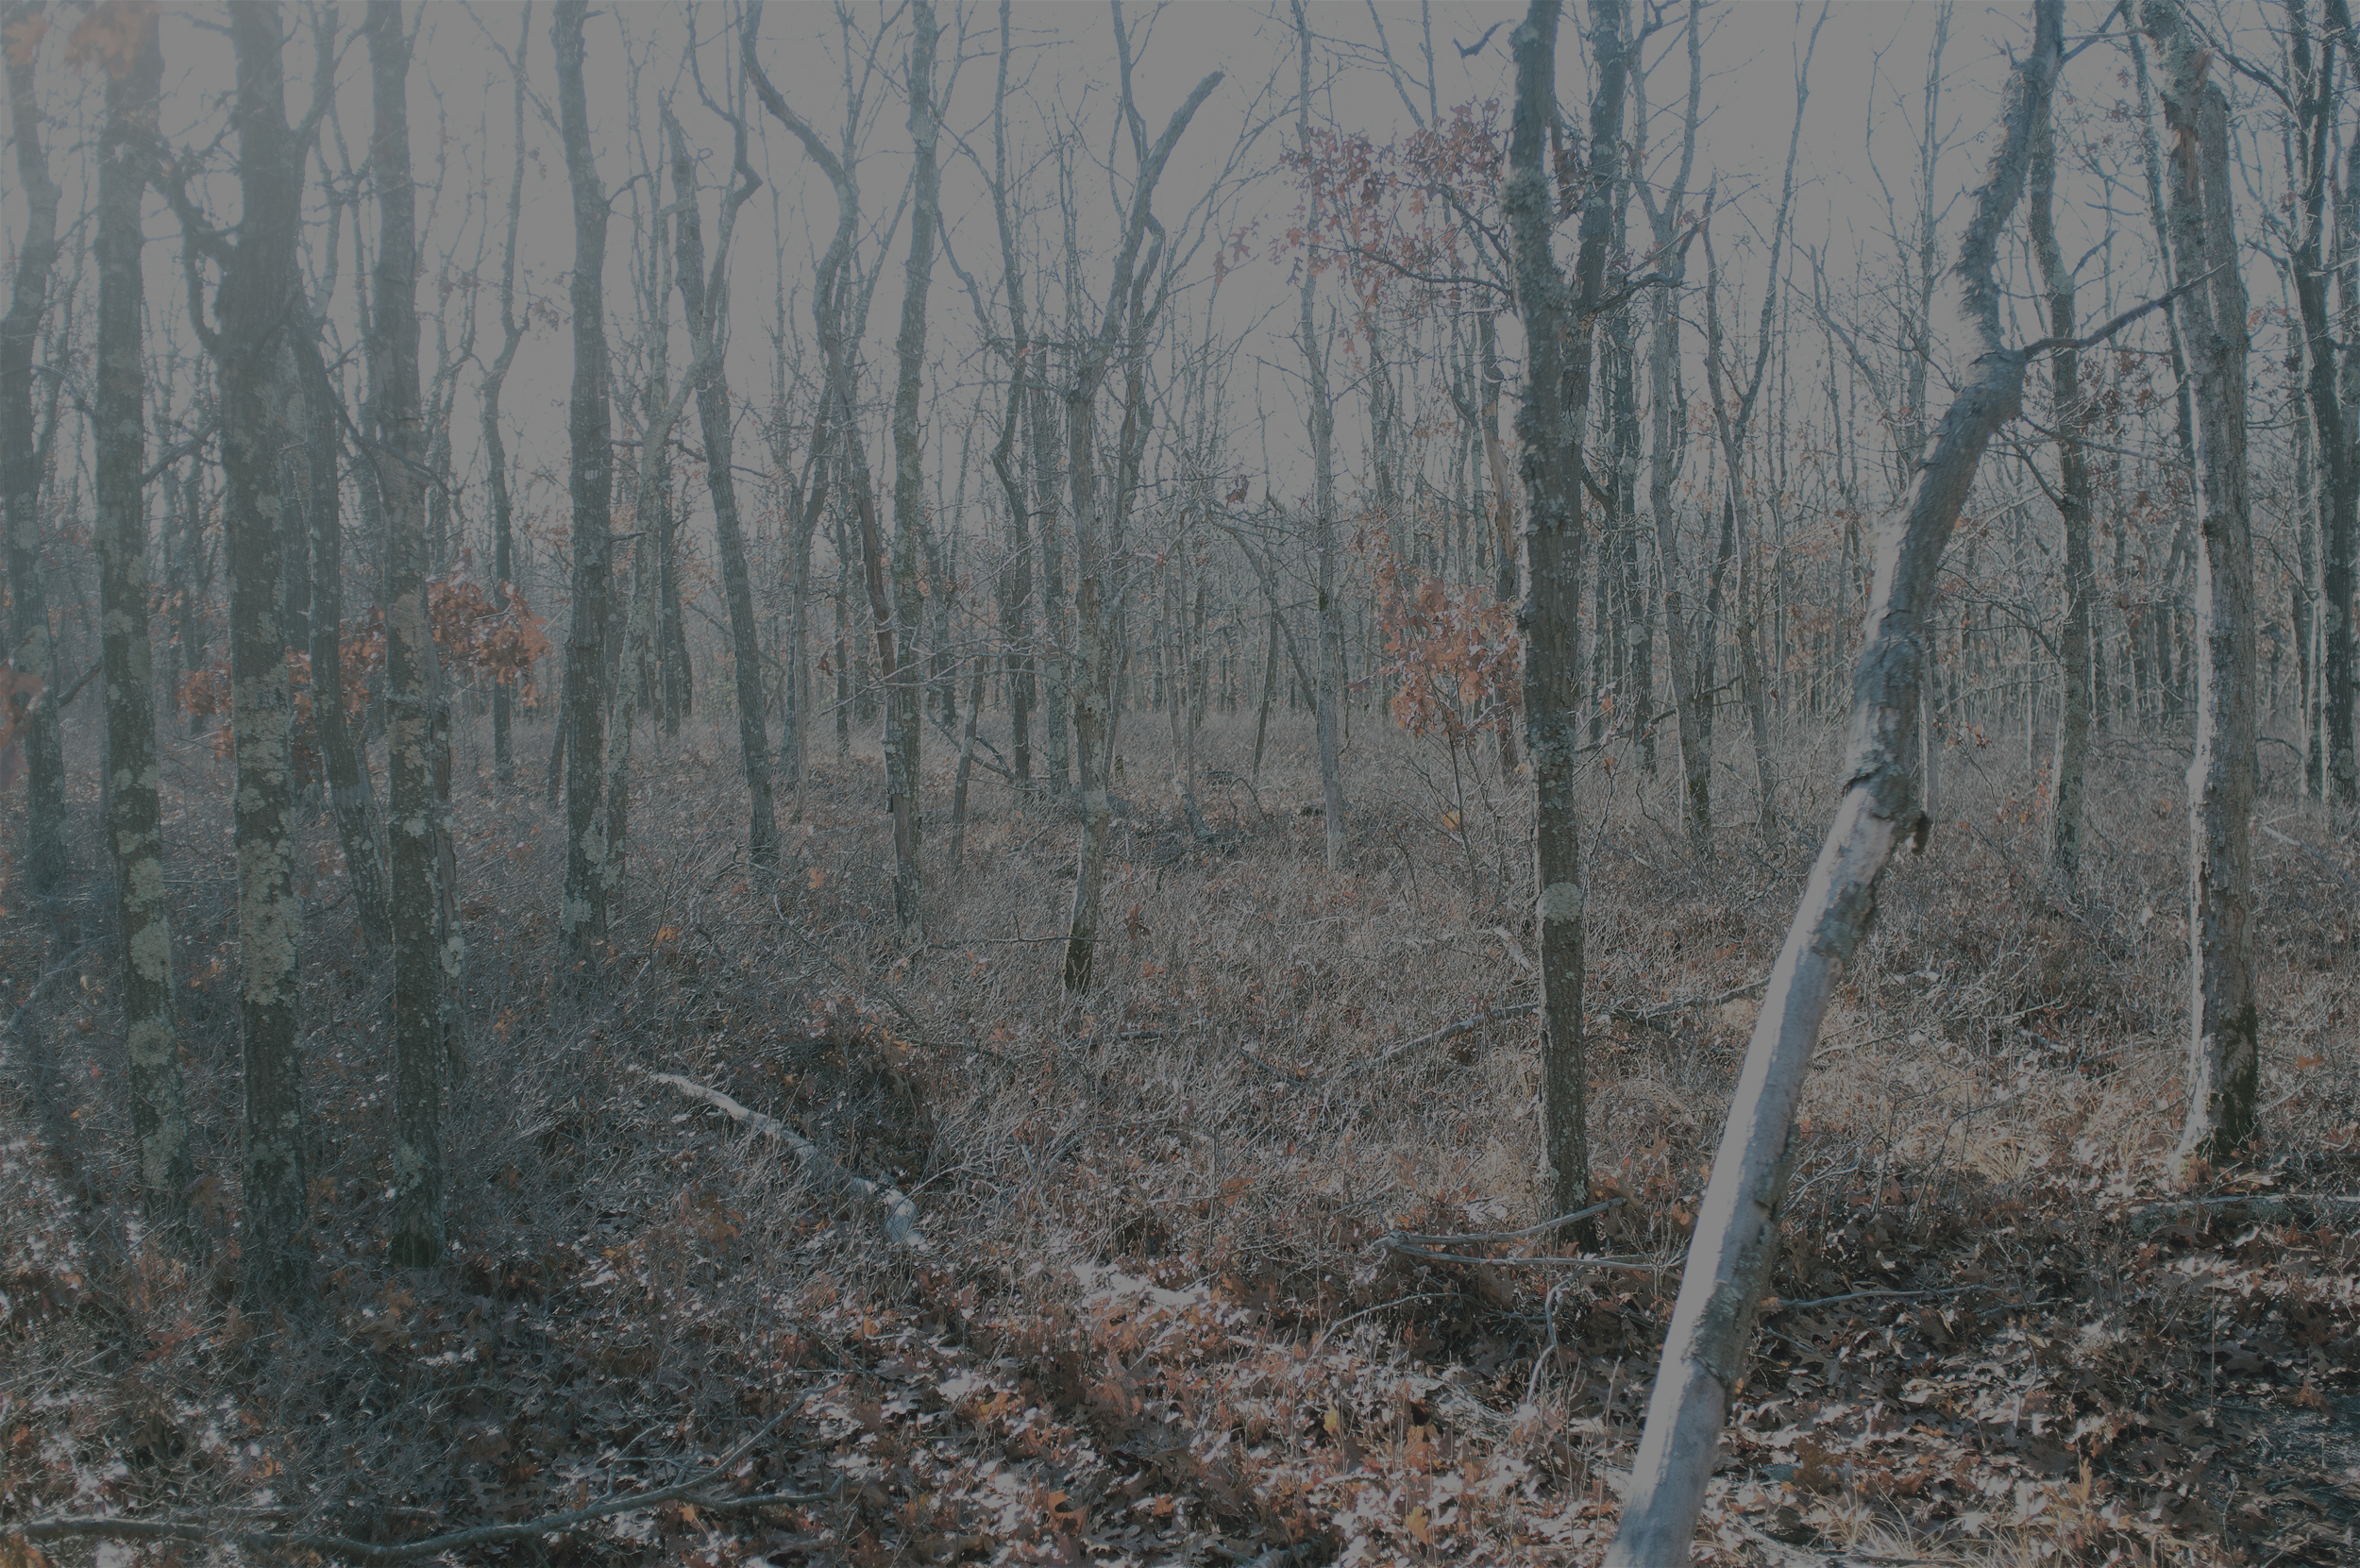 Sagg Trail Two, 2018, photo on aluminum, 65 x 43.3 in, edition of 5 (4 available), $5,000